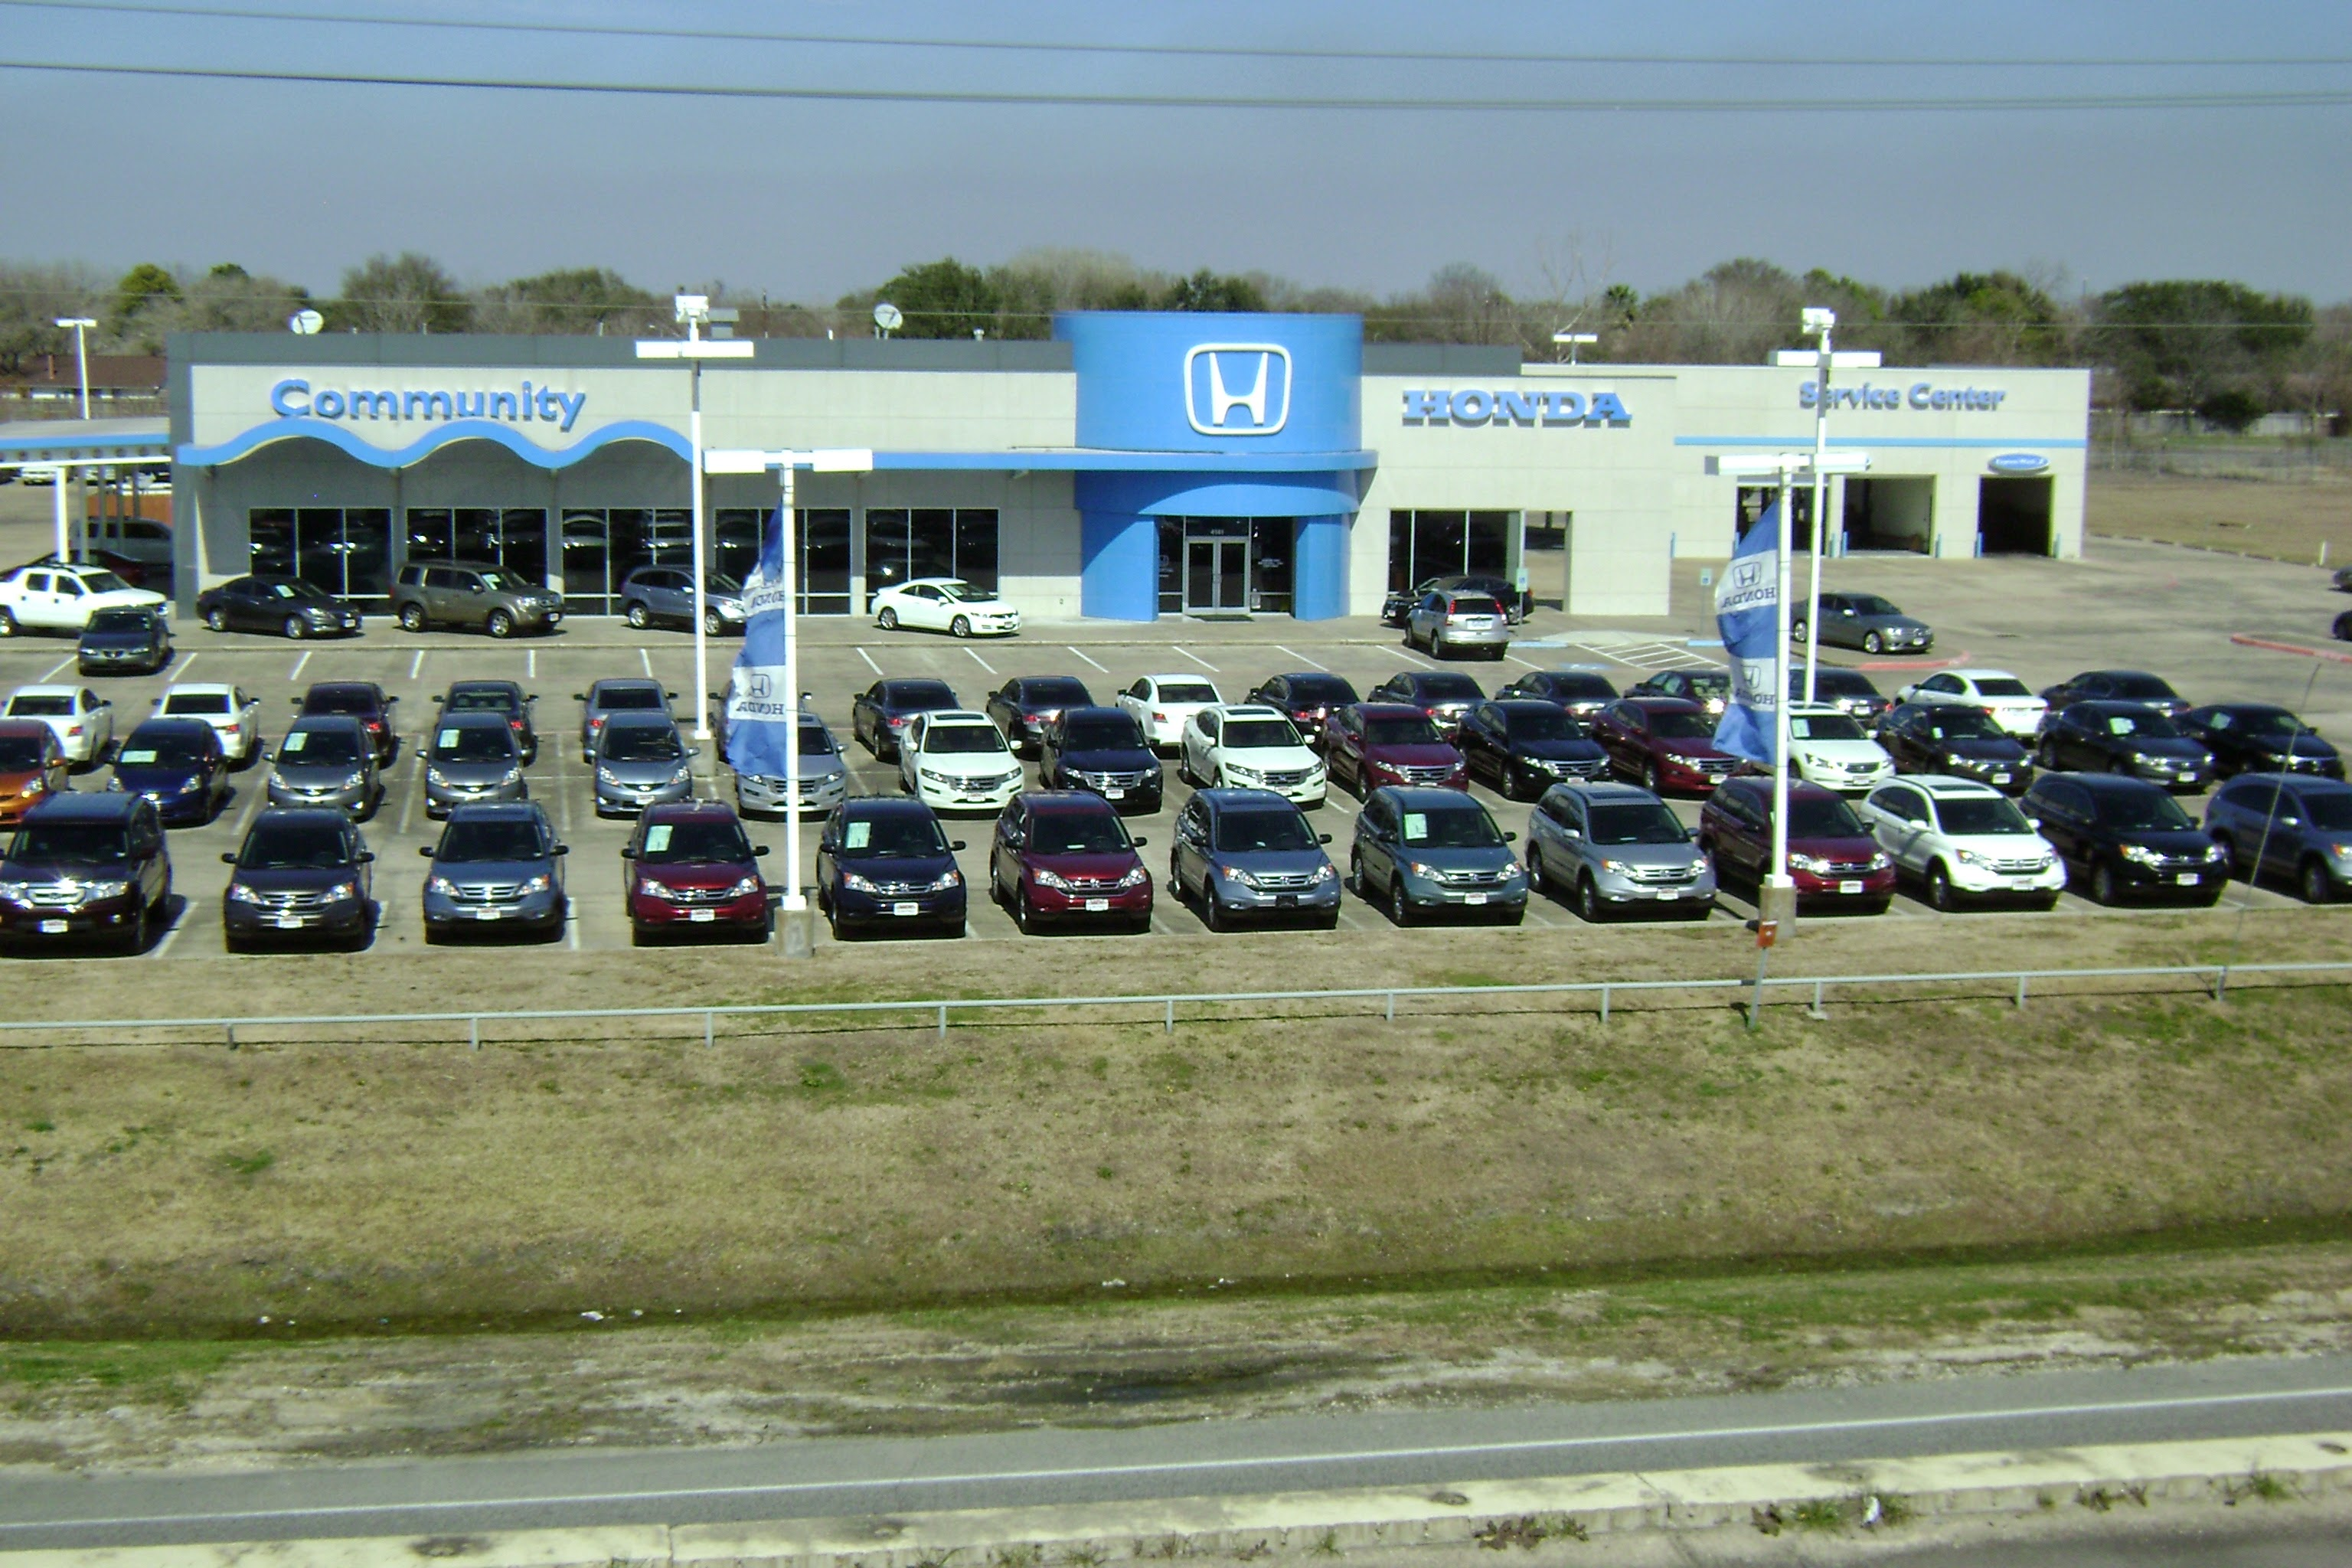 community honda in baytown tx 844 863 2